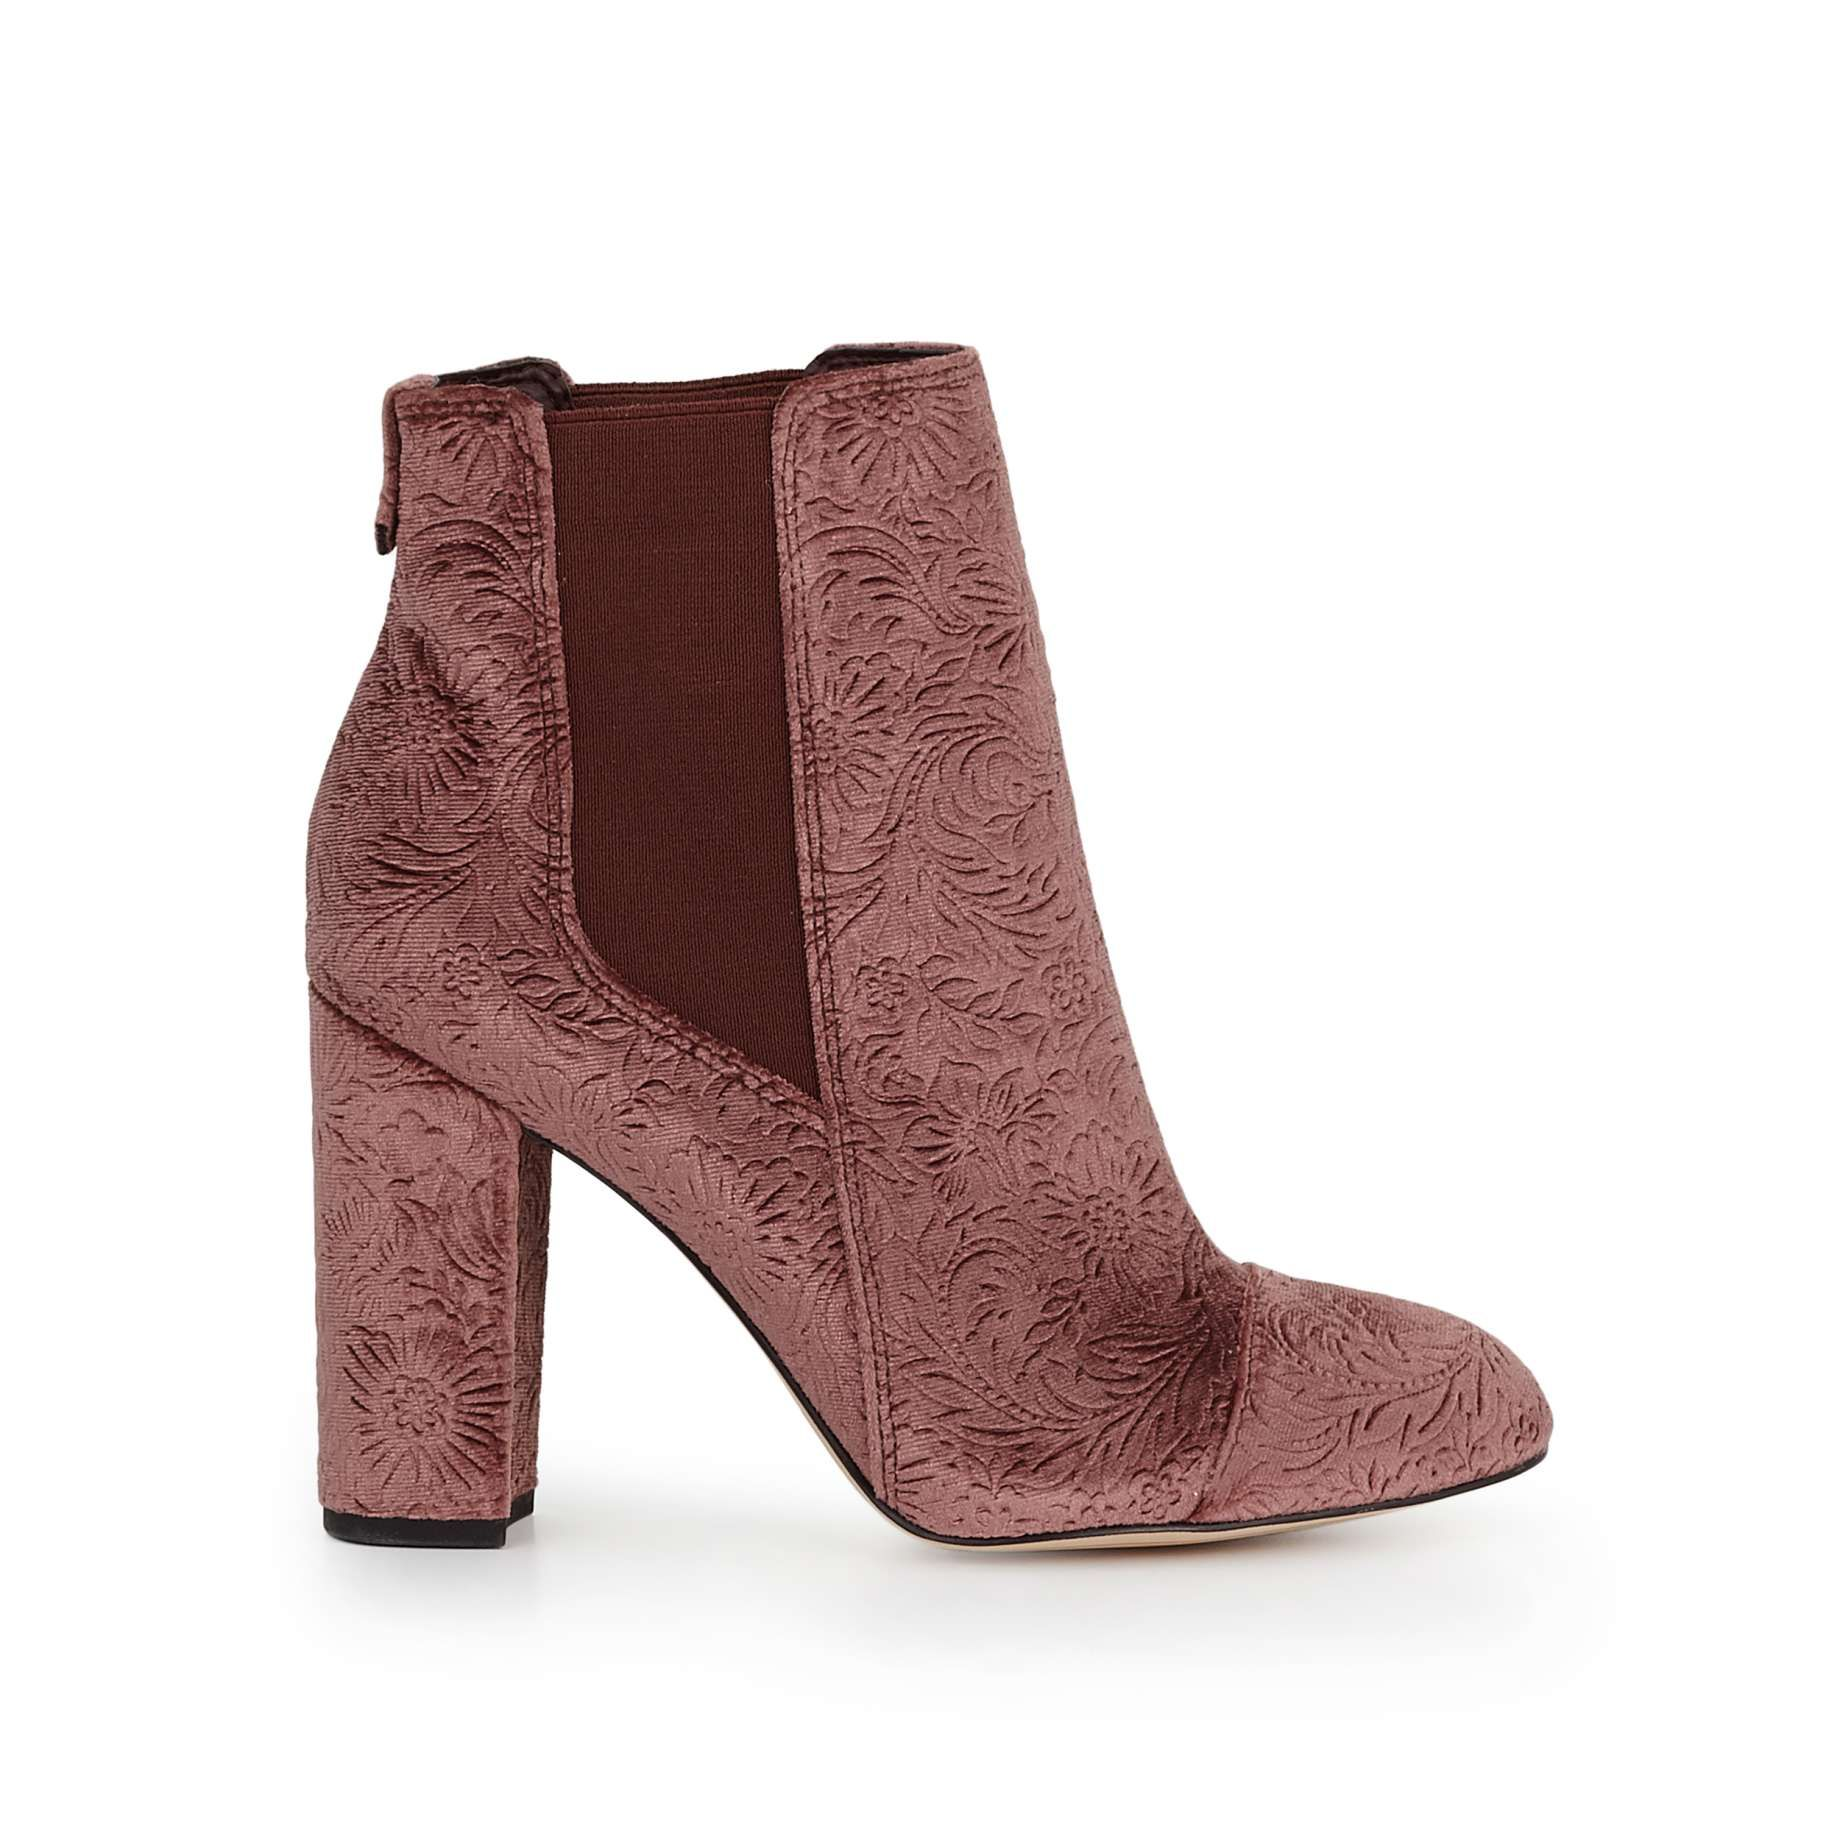 dfffad77e76908 Case Ankle Bootie by Sam Edelman - Wine Embossed Velvet - View 2